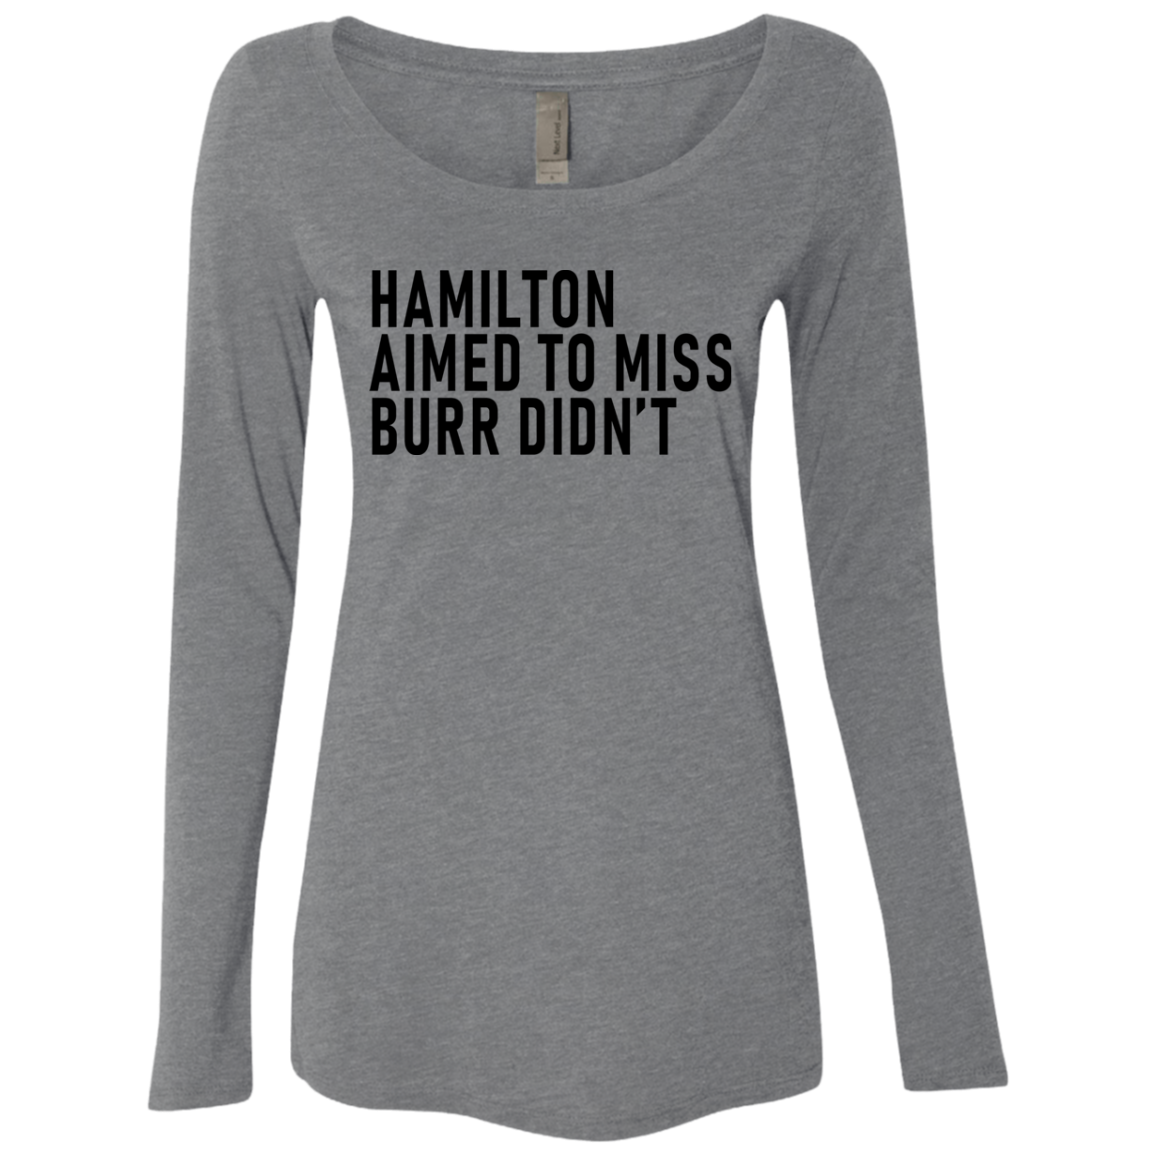 Hamilton Aimed To Miss Burr Didn't Women's Long Sleeve Tee